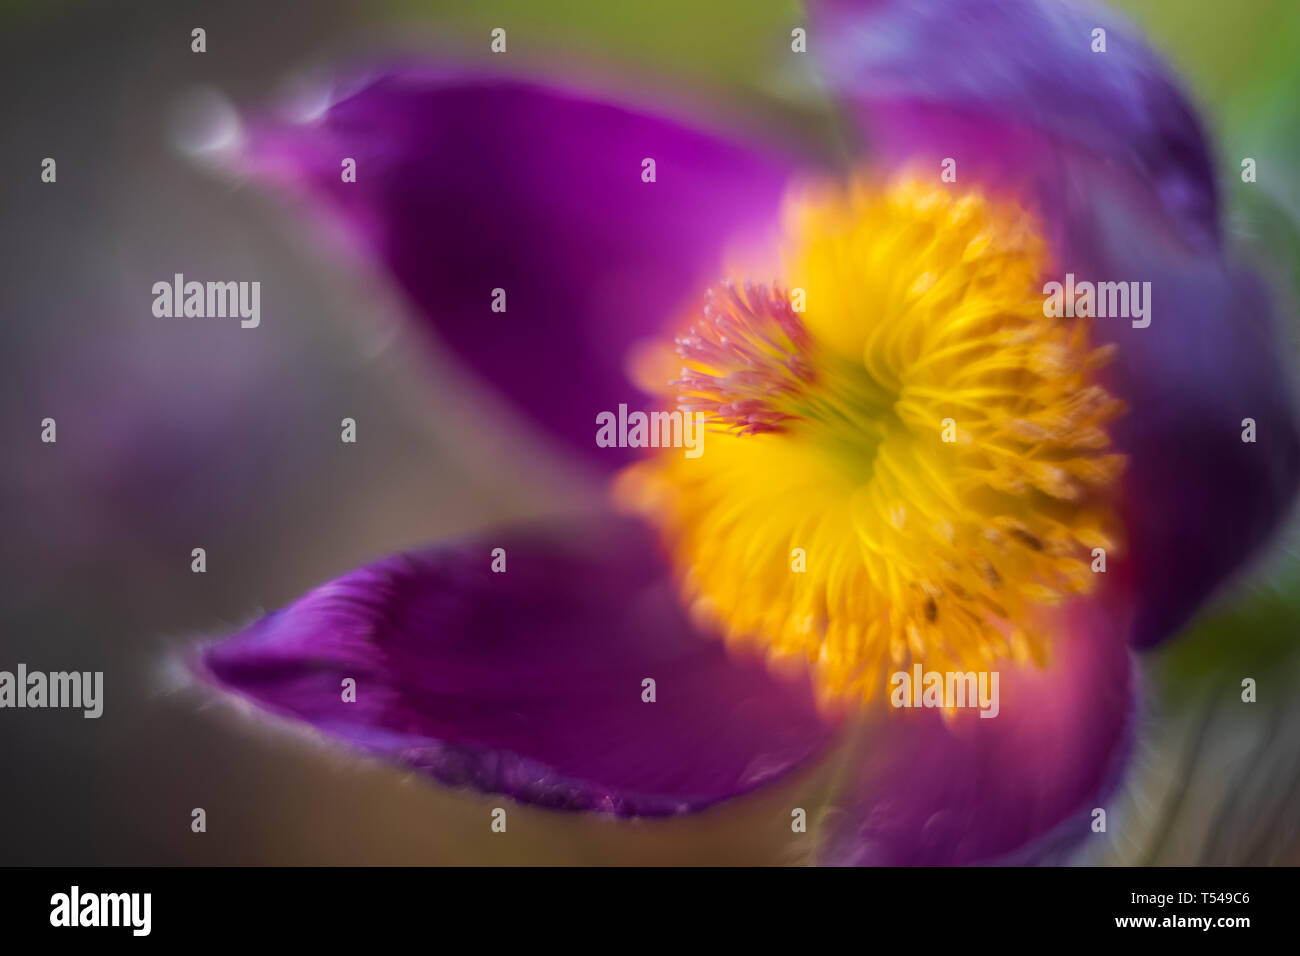 A macro photograph of unknown flower taken with extremely low depth of field at sunset. - Stock Image